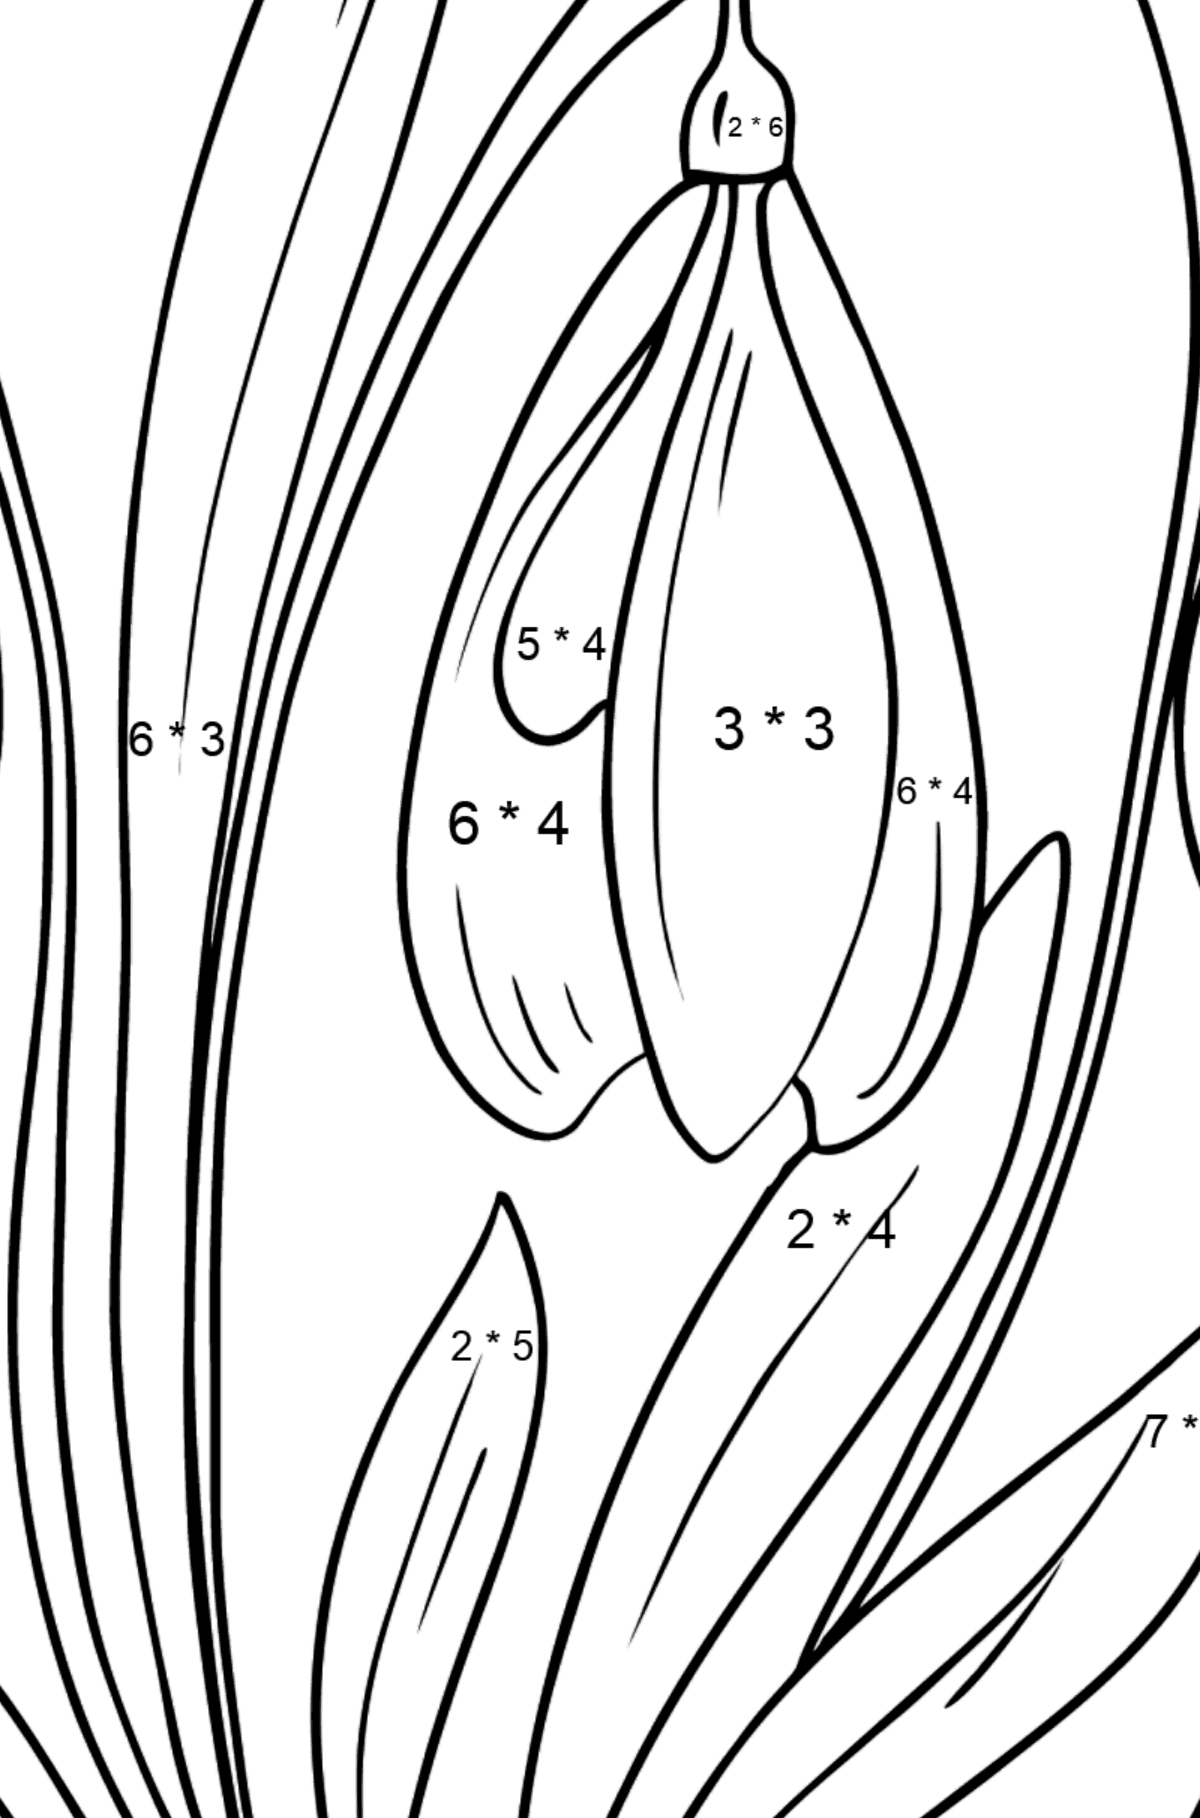 Snowdrops Coloring Page - Math Coloring - Multiplication for Kids